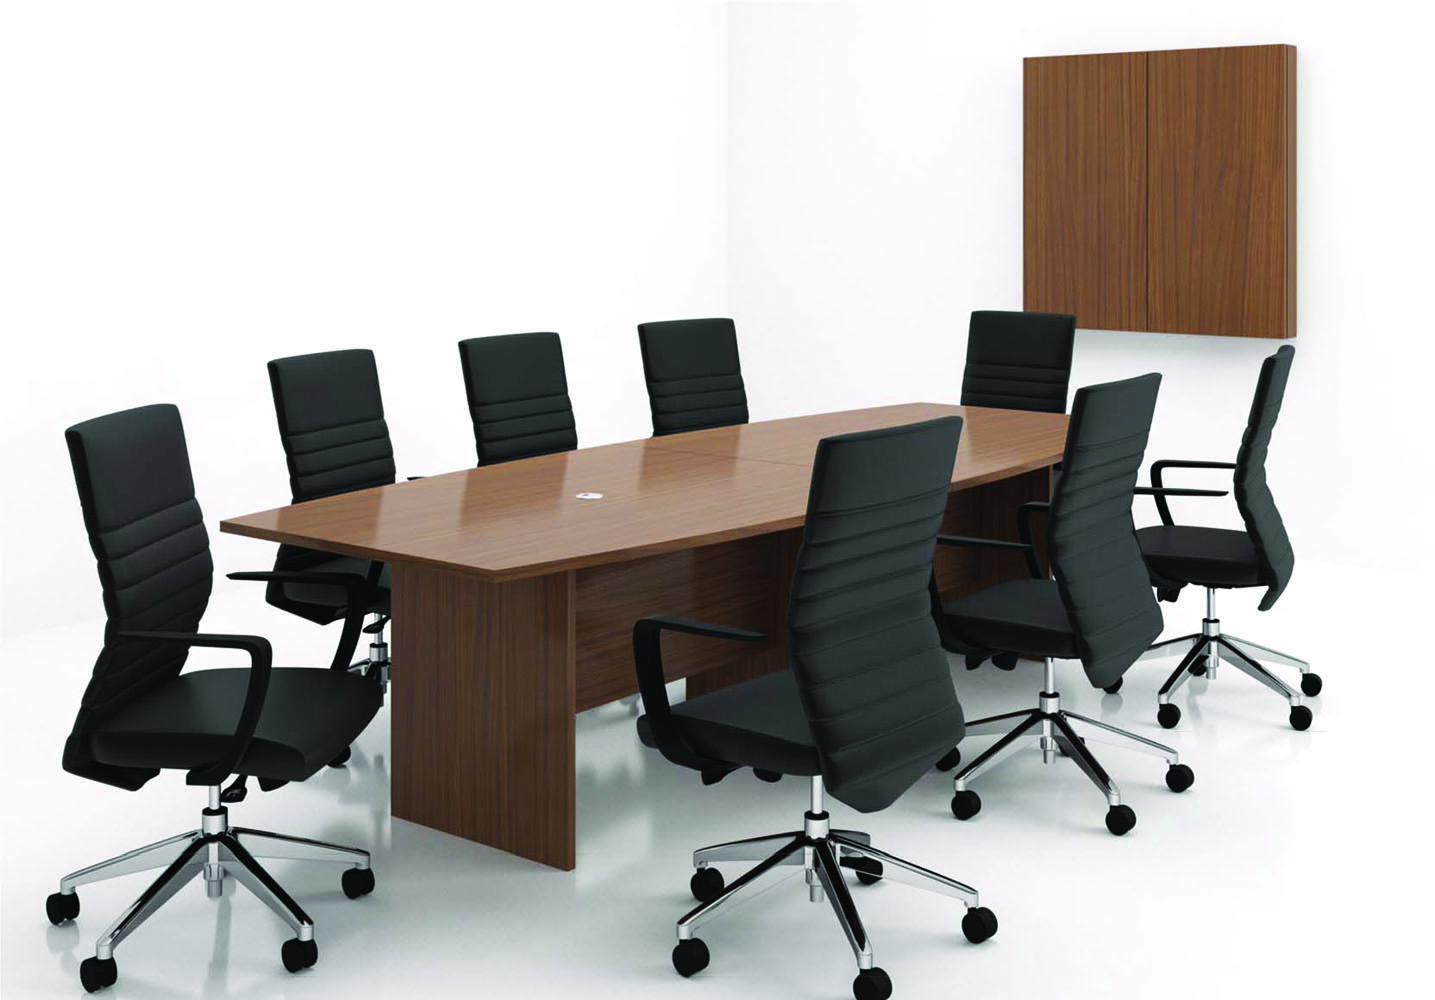 Conference Room Setup - Collaboration Spaces Office Furniture Sets